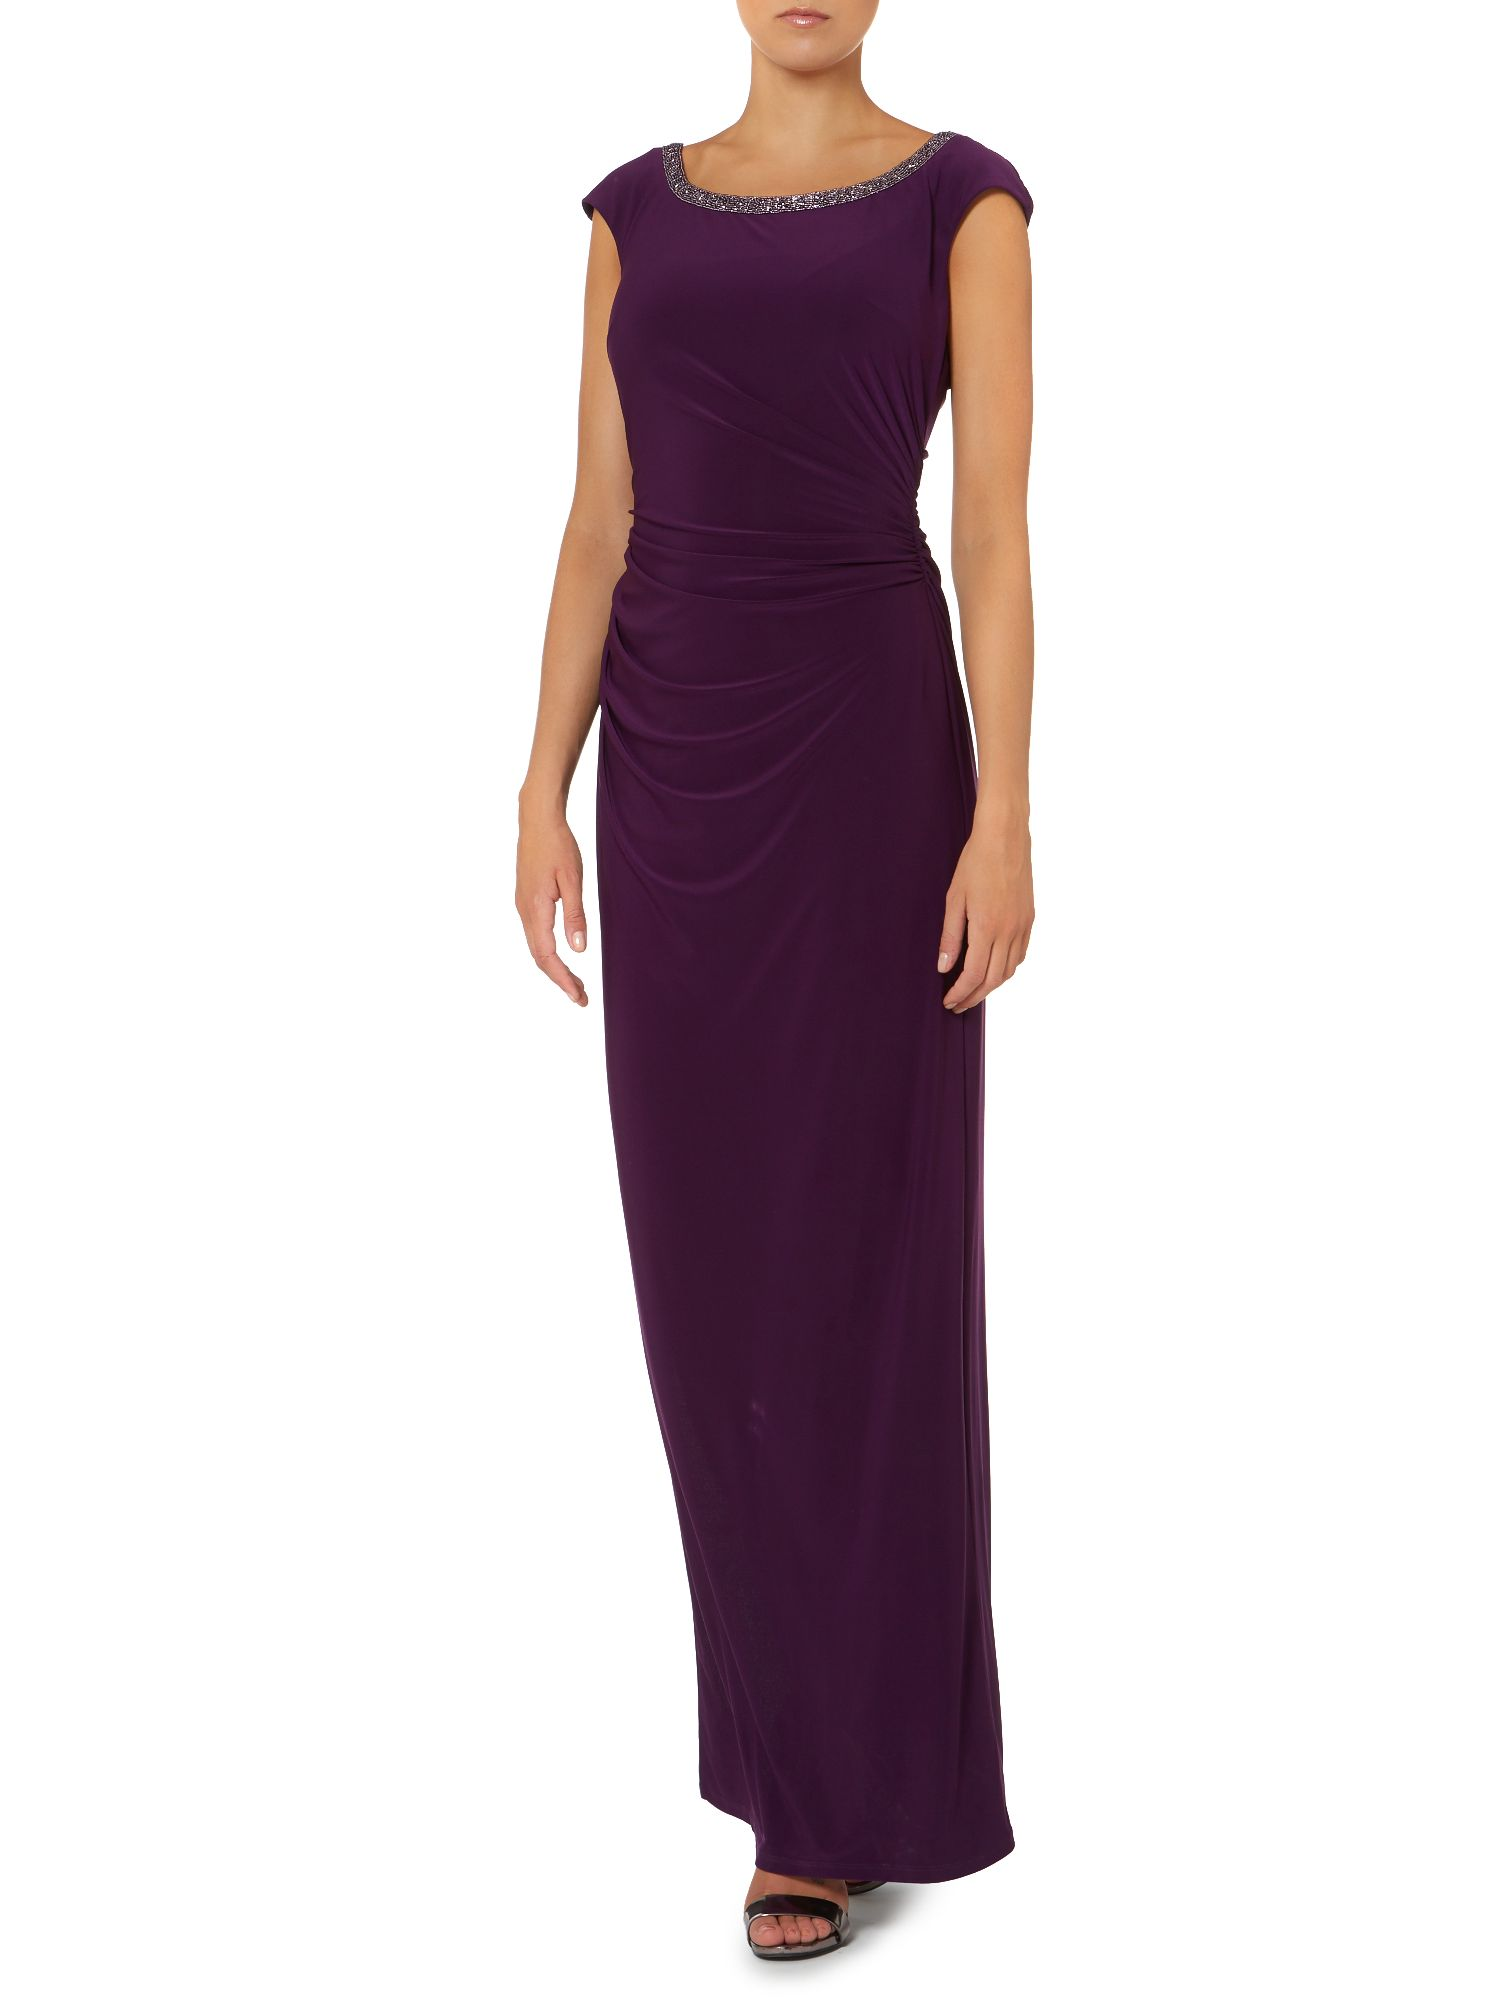 Maxi dress with beaded neckline